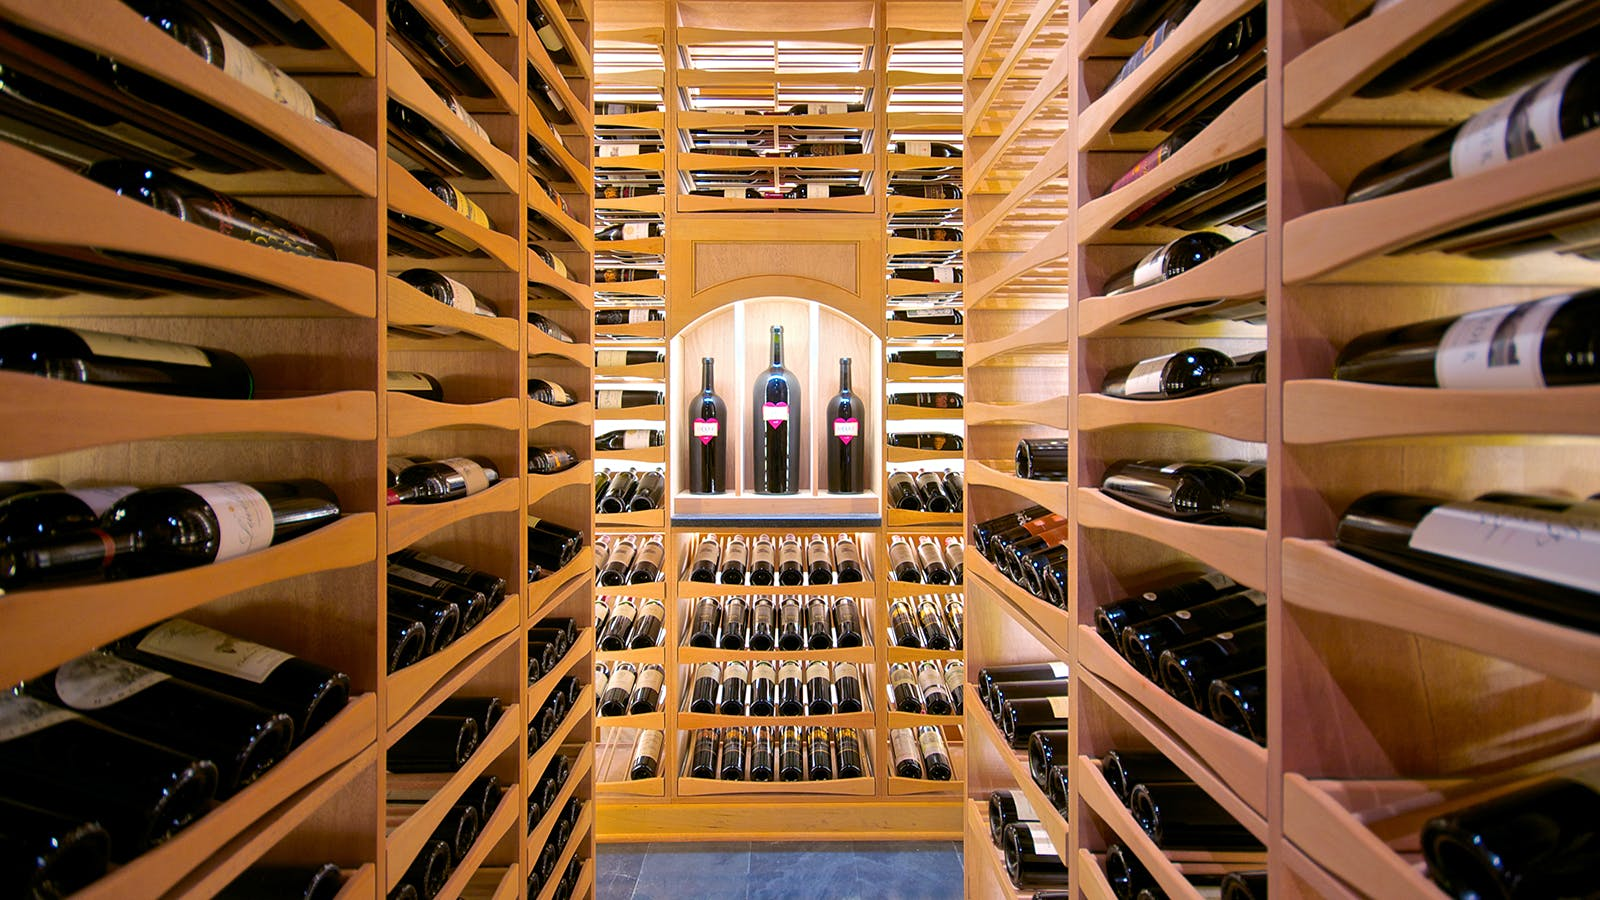 Wine cellar in a private house with their own hands: photos, tips on installation and equipment 70